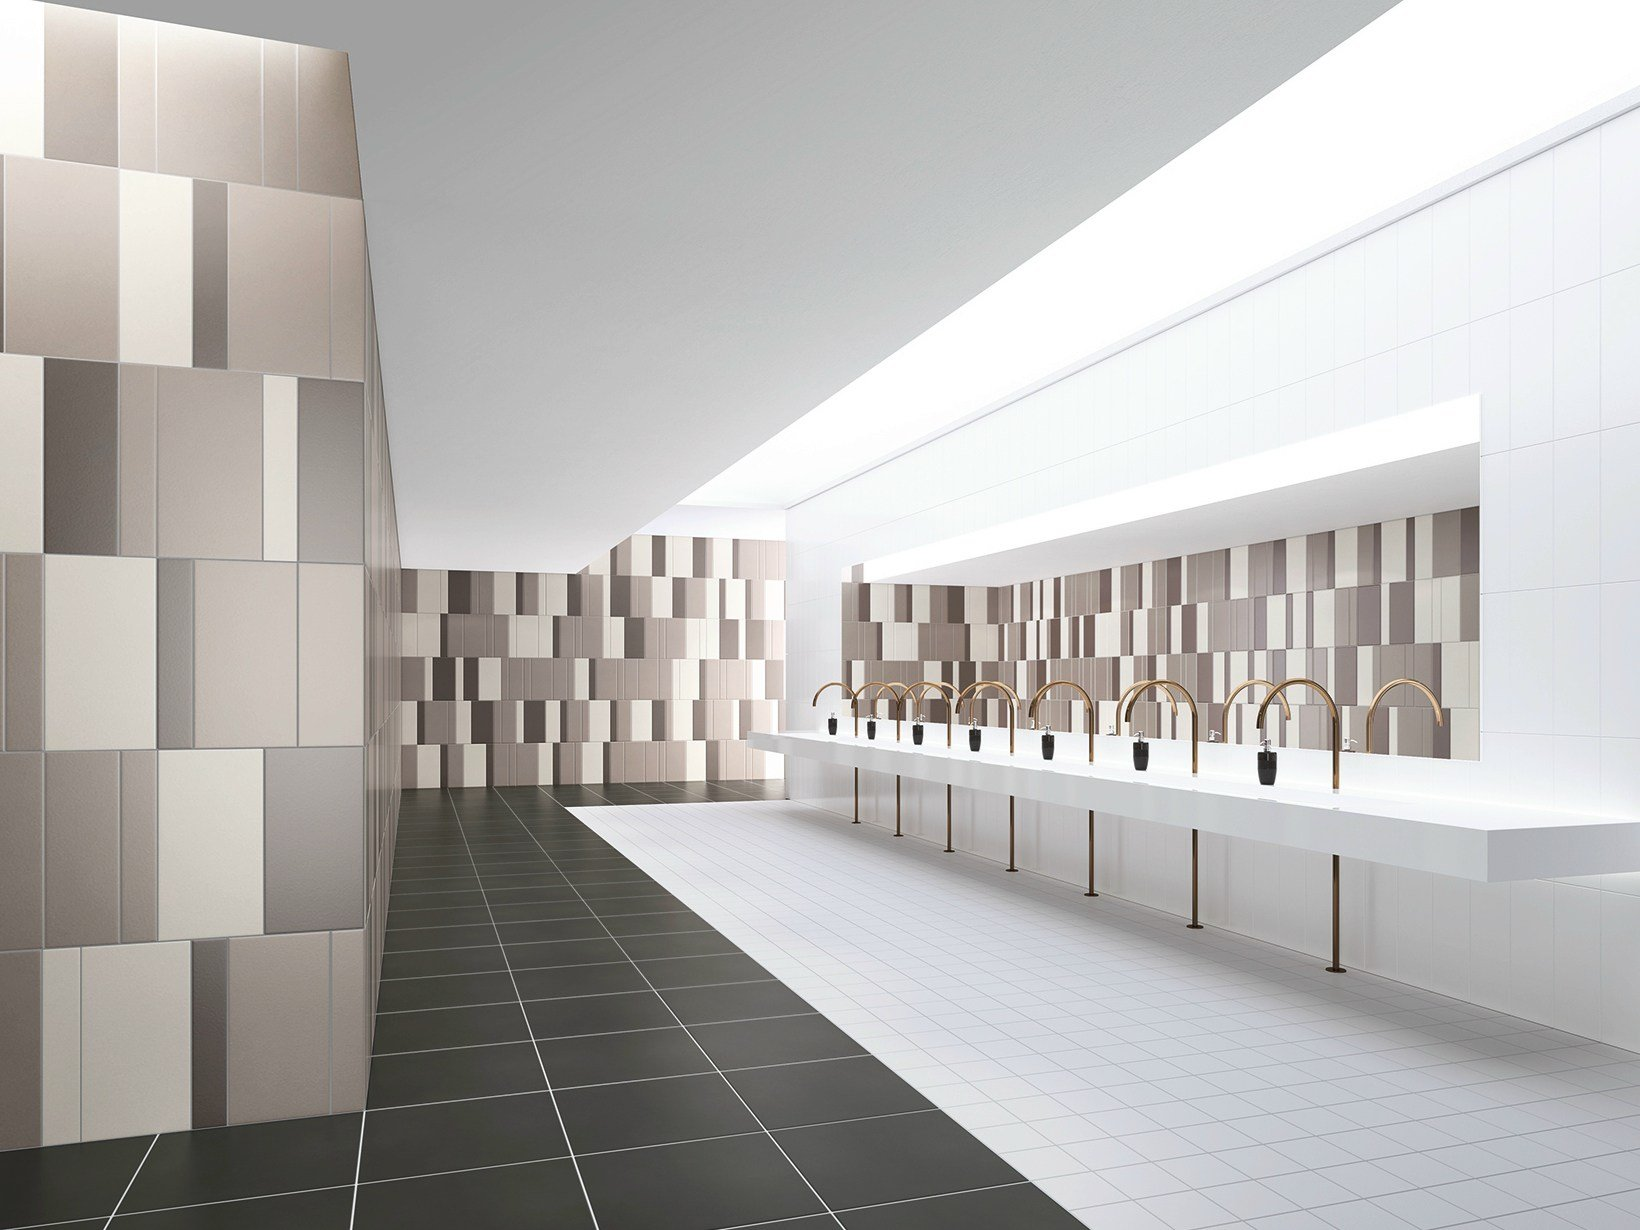 Ceramic wall floor tiles chromaplural by agrob buchtal for Buchtal carrelage